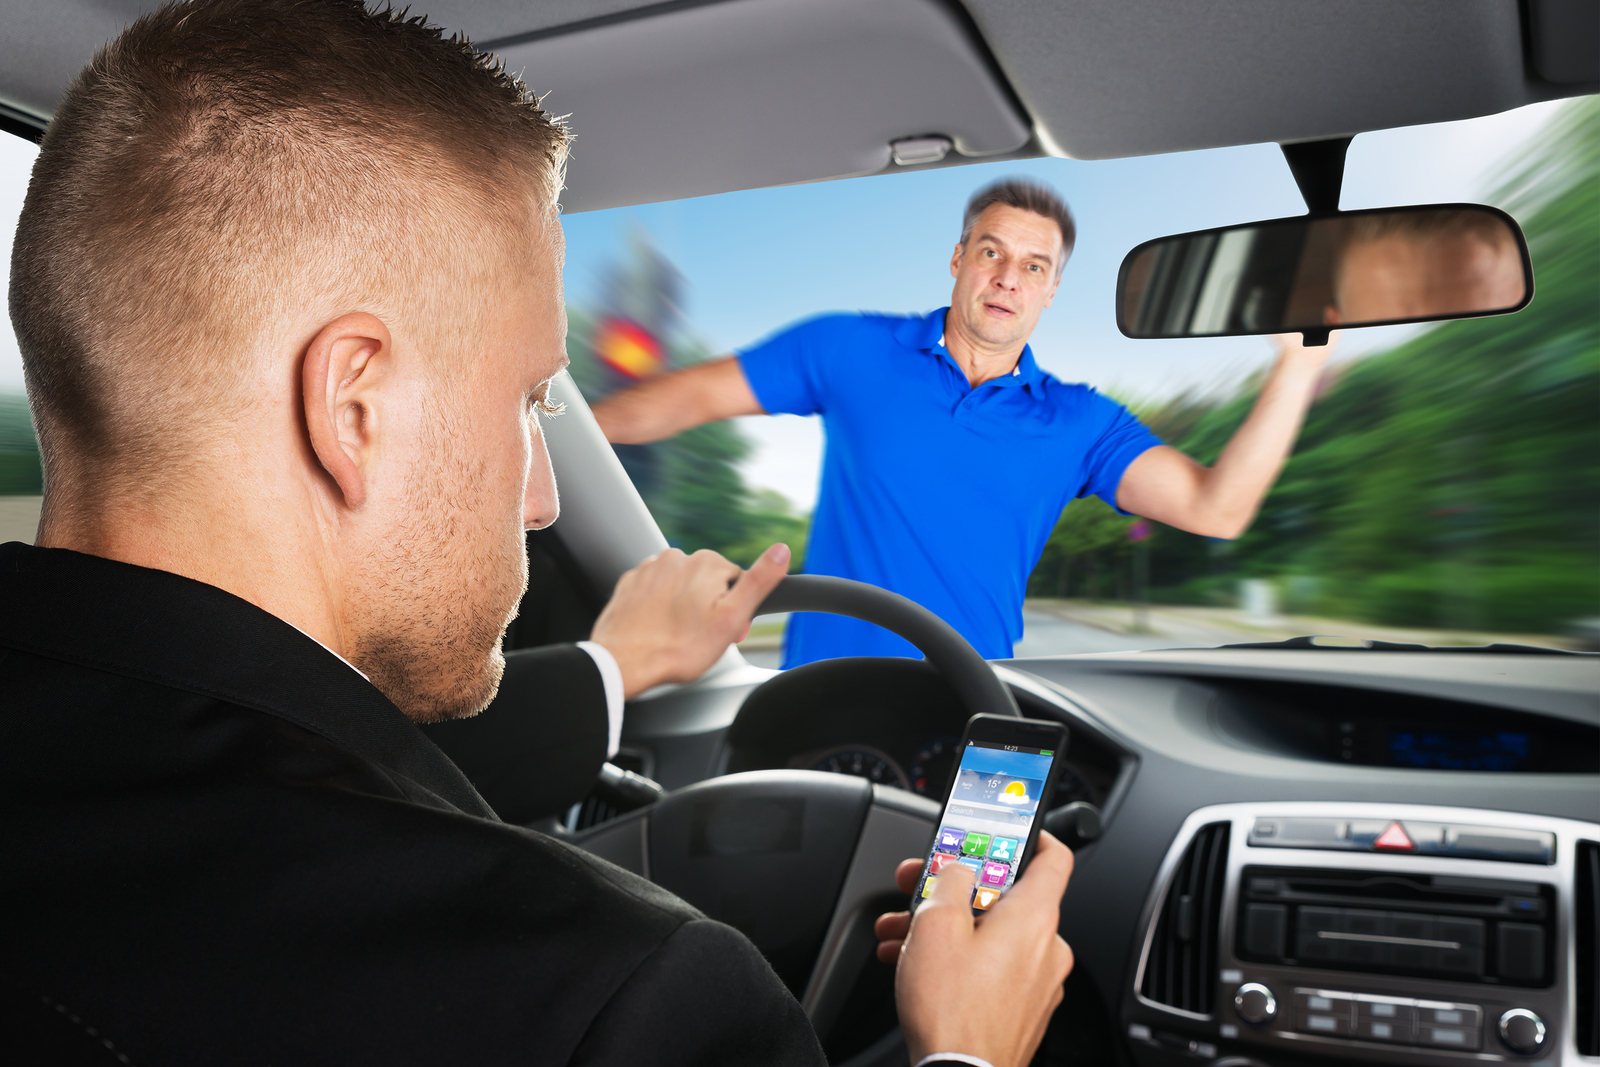 Algorithm Uses AI and Machine Learning to Detect Distracted Driving  Engineering360